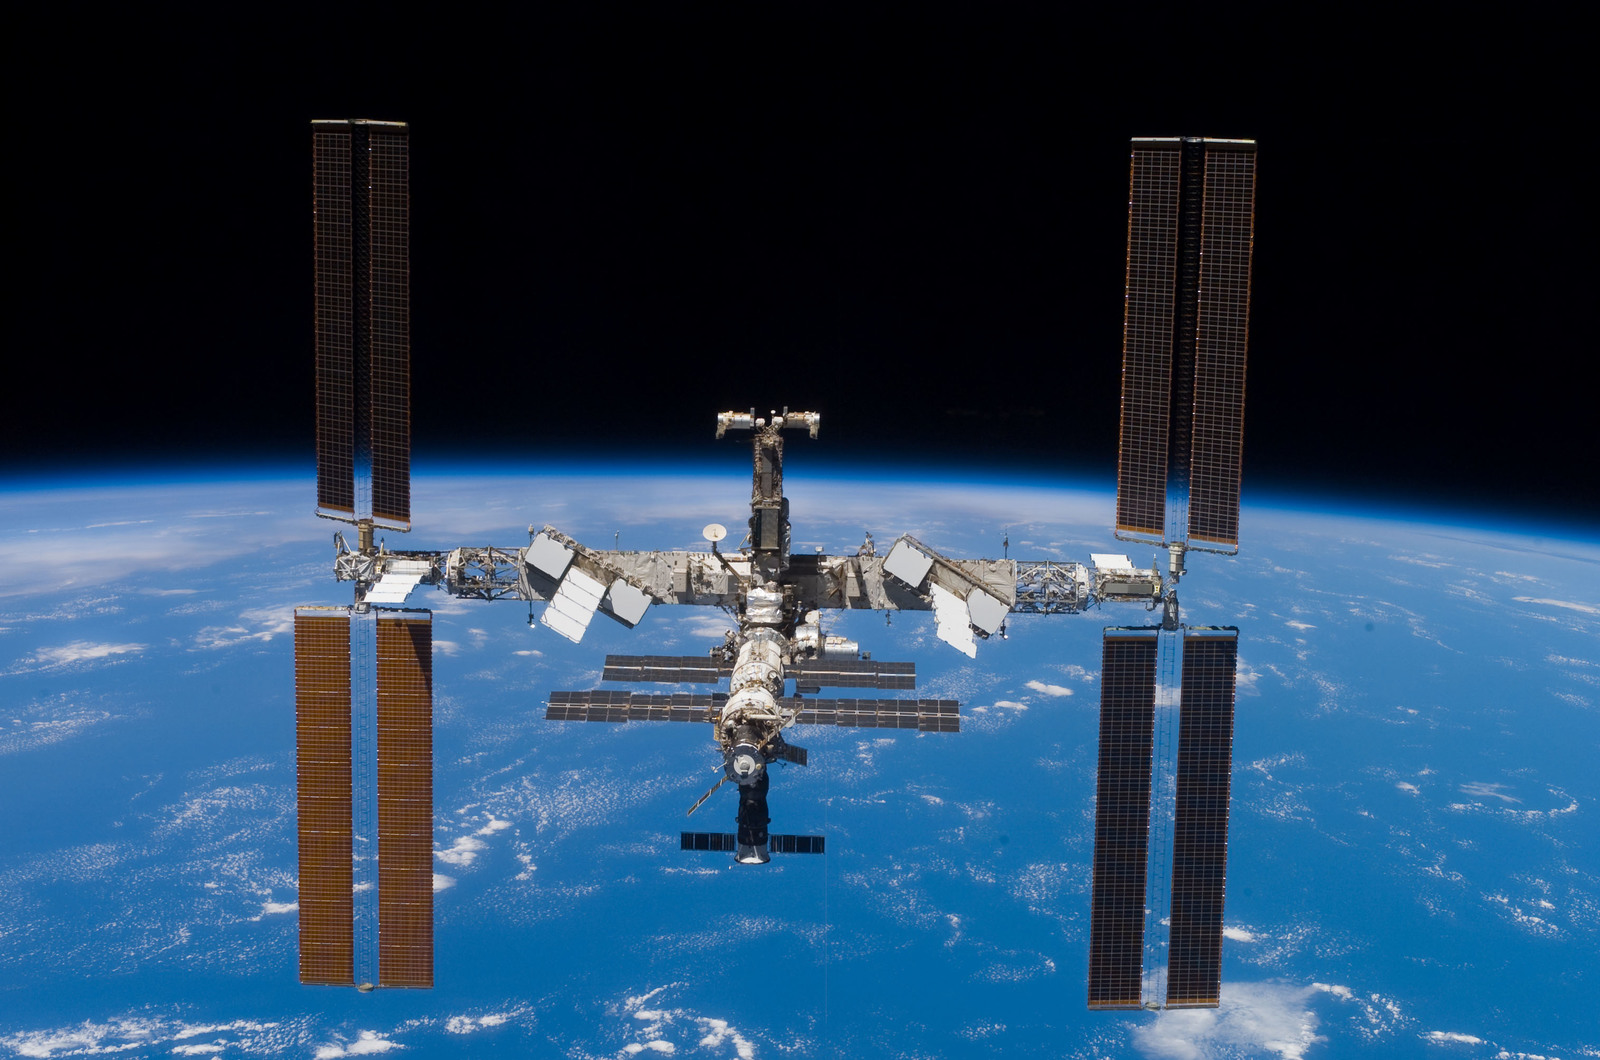 S117E08048 - STS-117 - STS-117 Space Shuttle Atlantis leaves the ISS